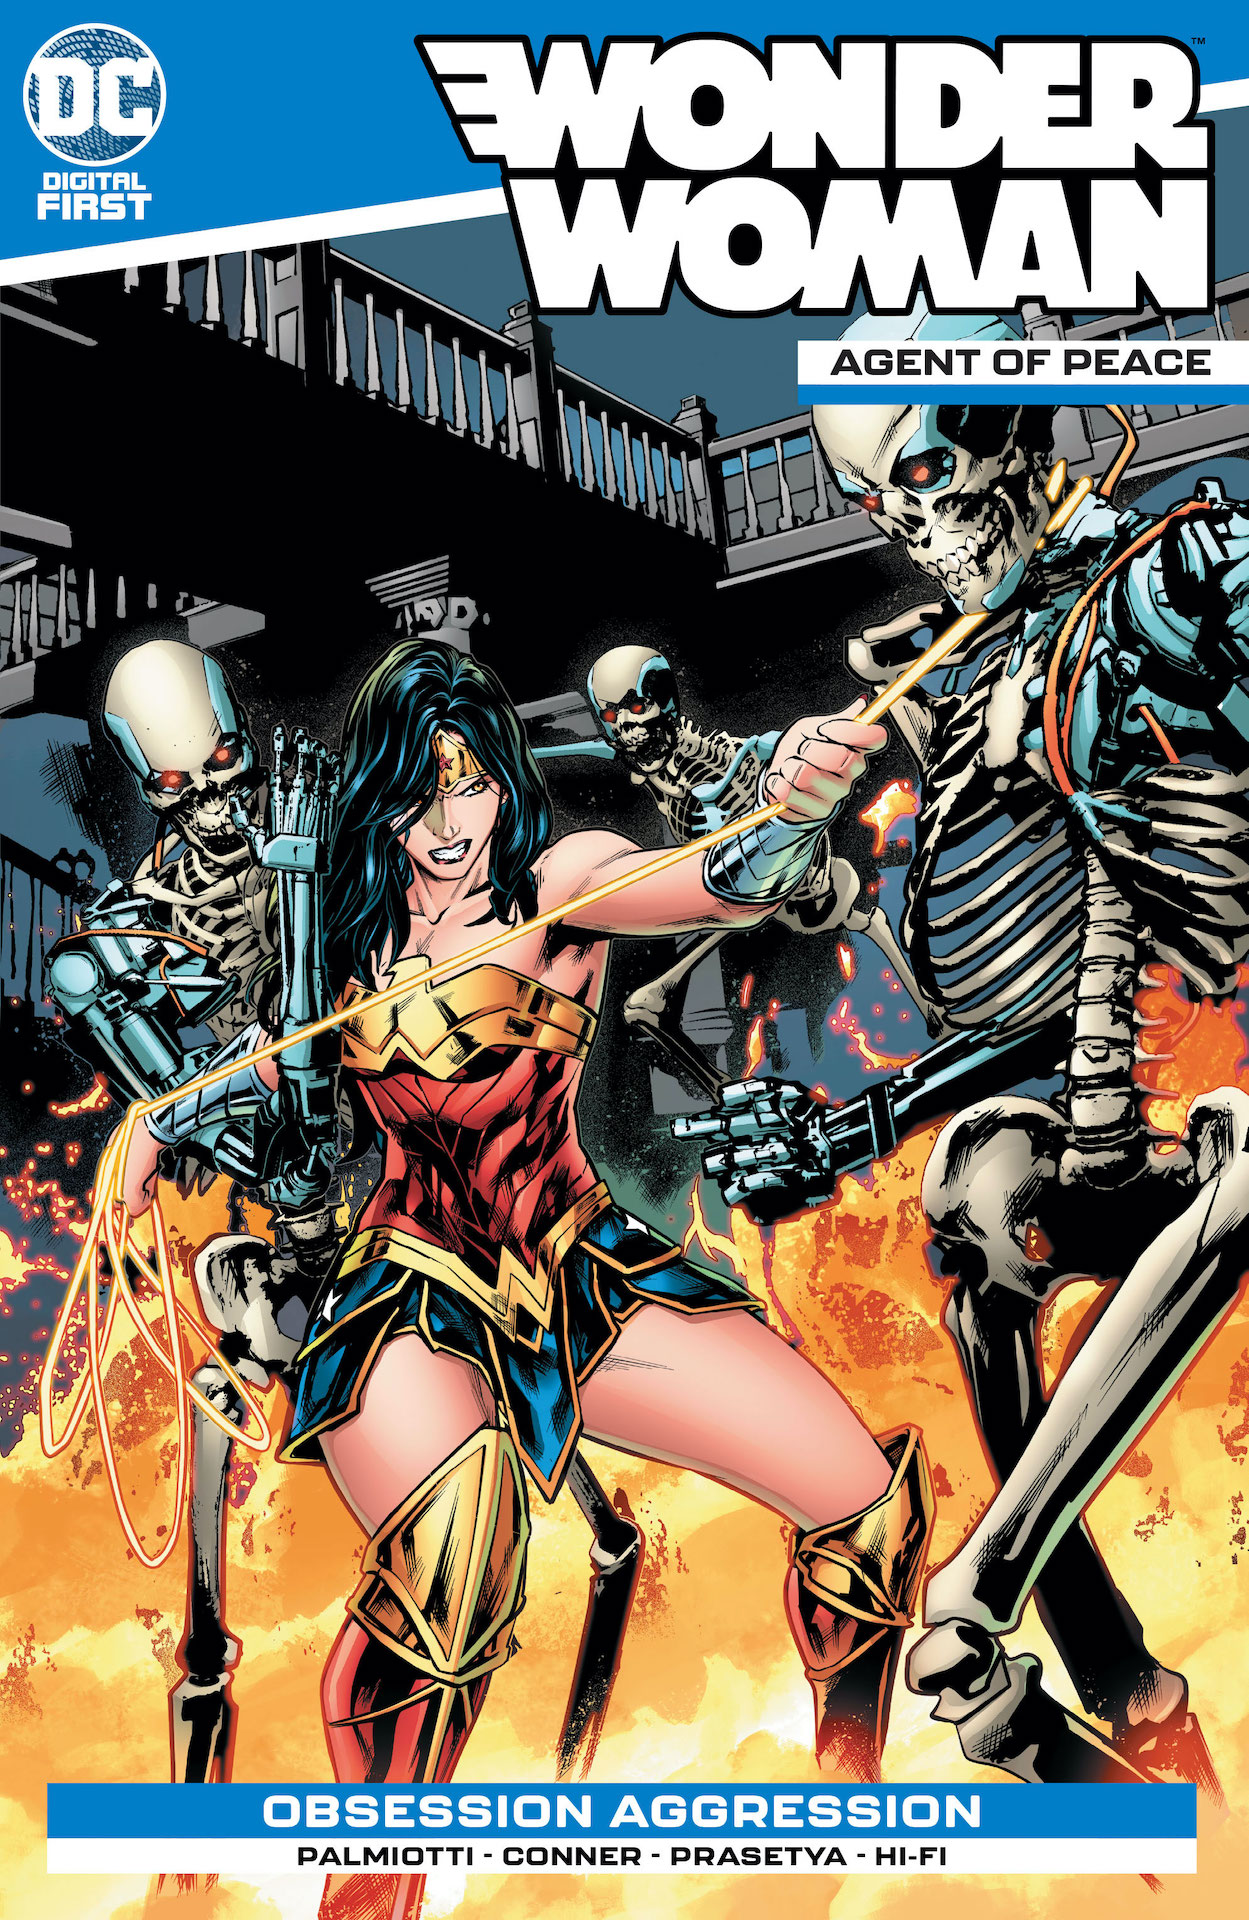 DC Preview: Wonder Woman: Agent of Peace #9